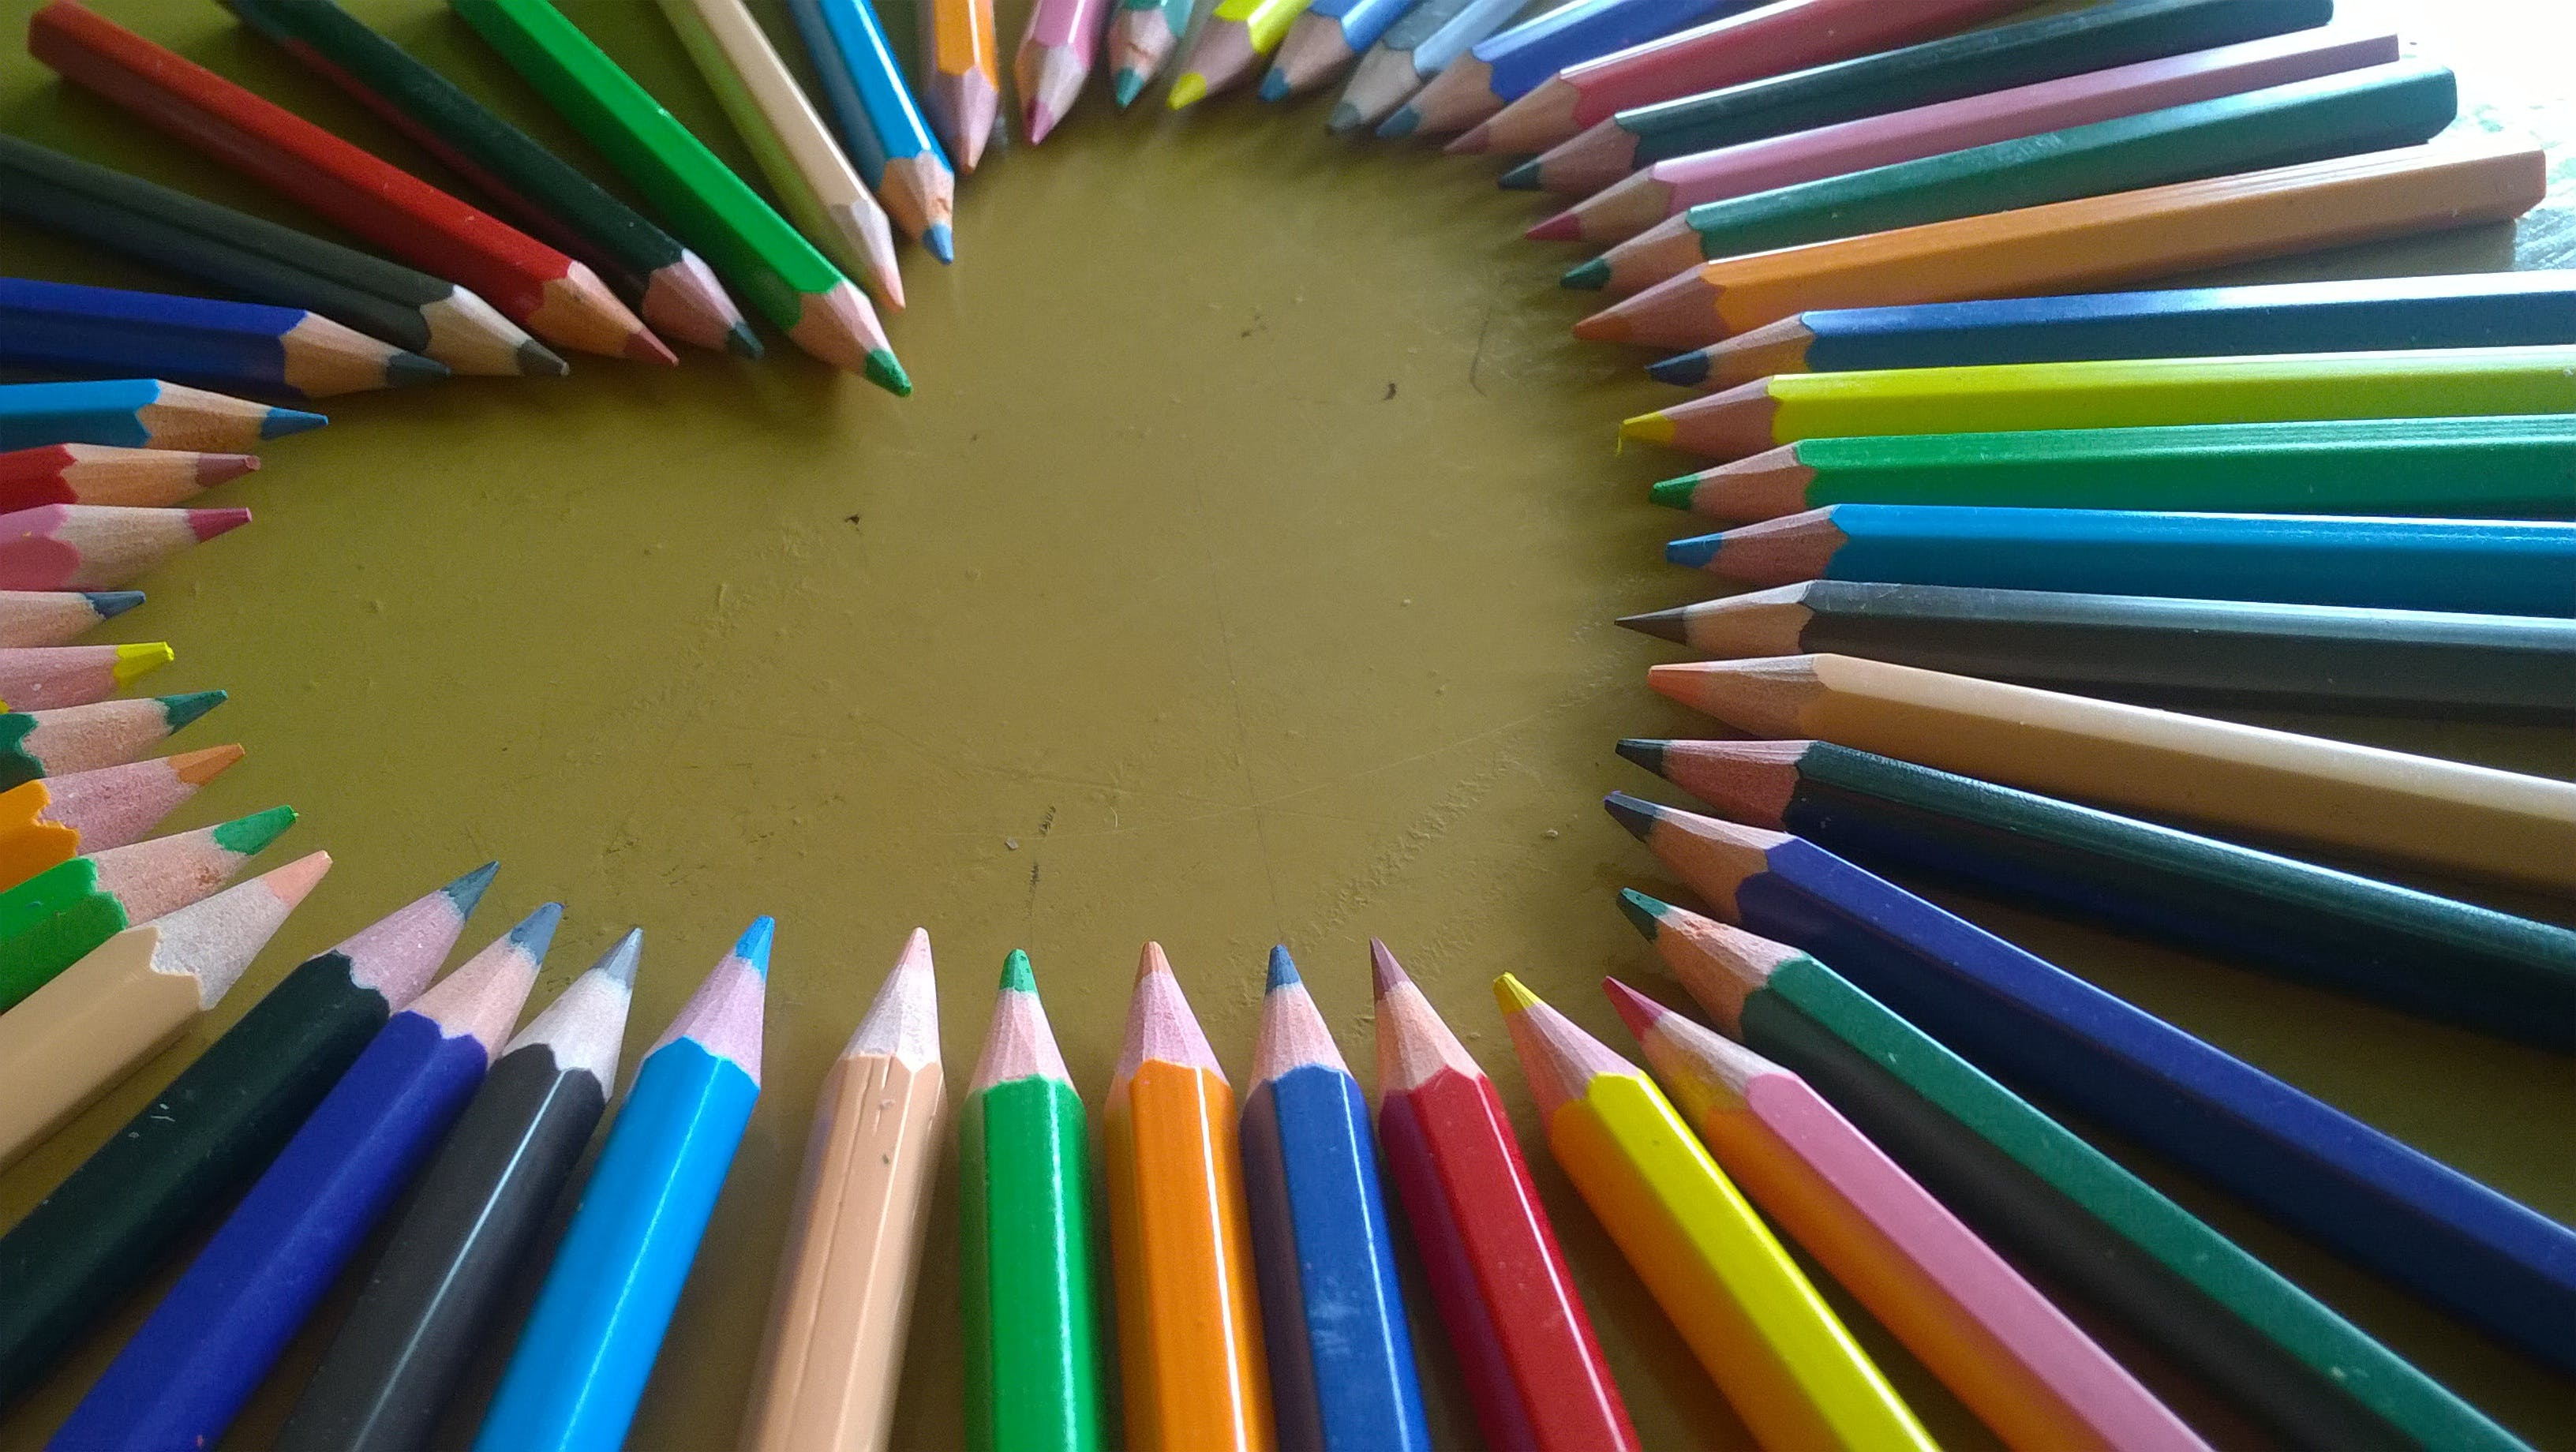 Free stock photo of wood, heart, pencil, colors